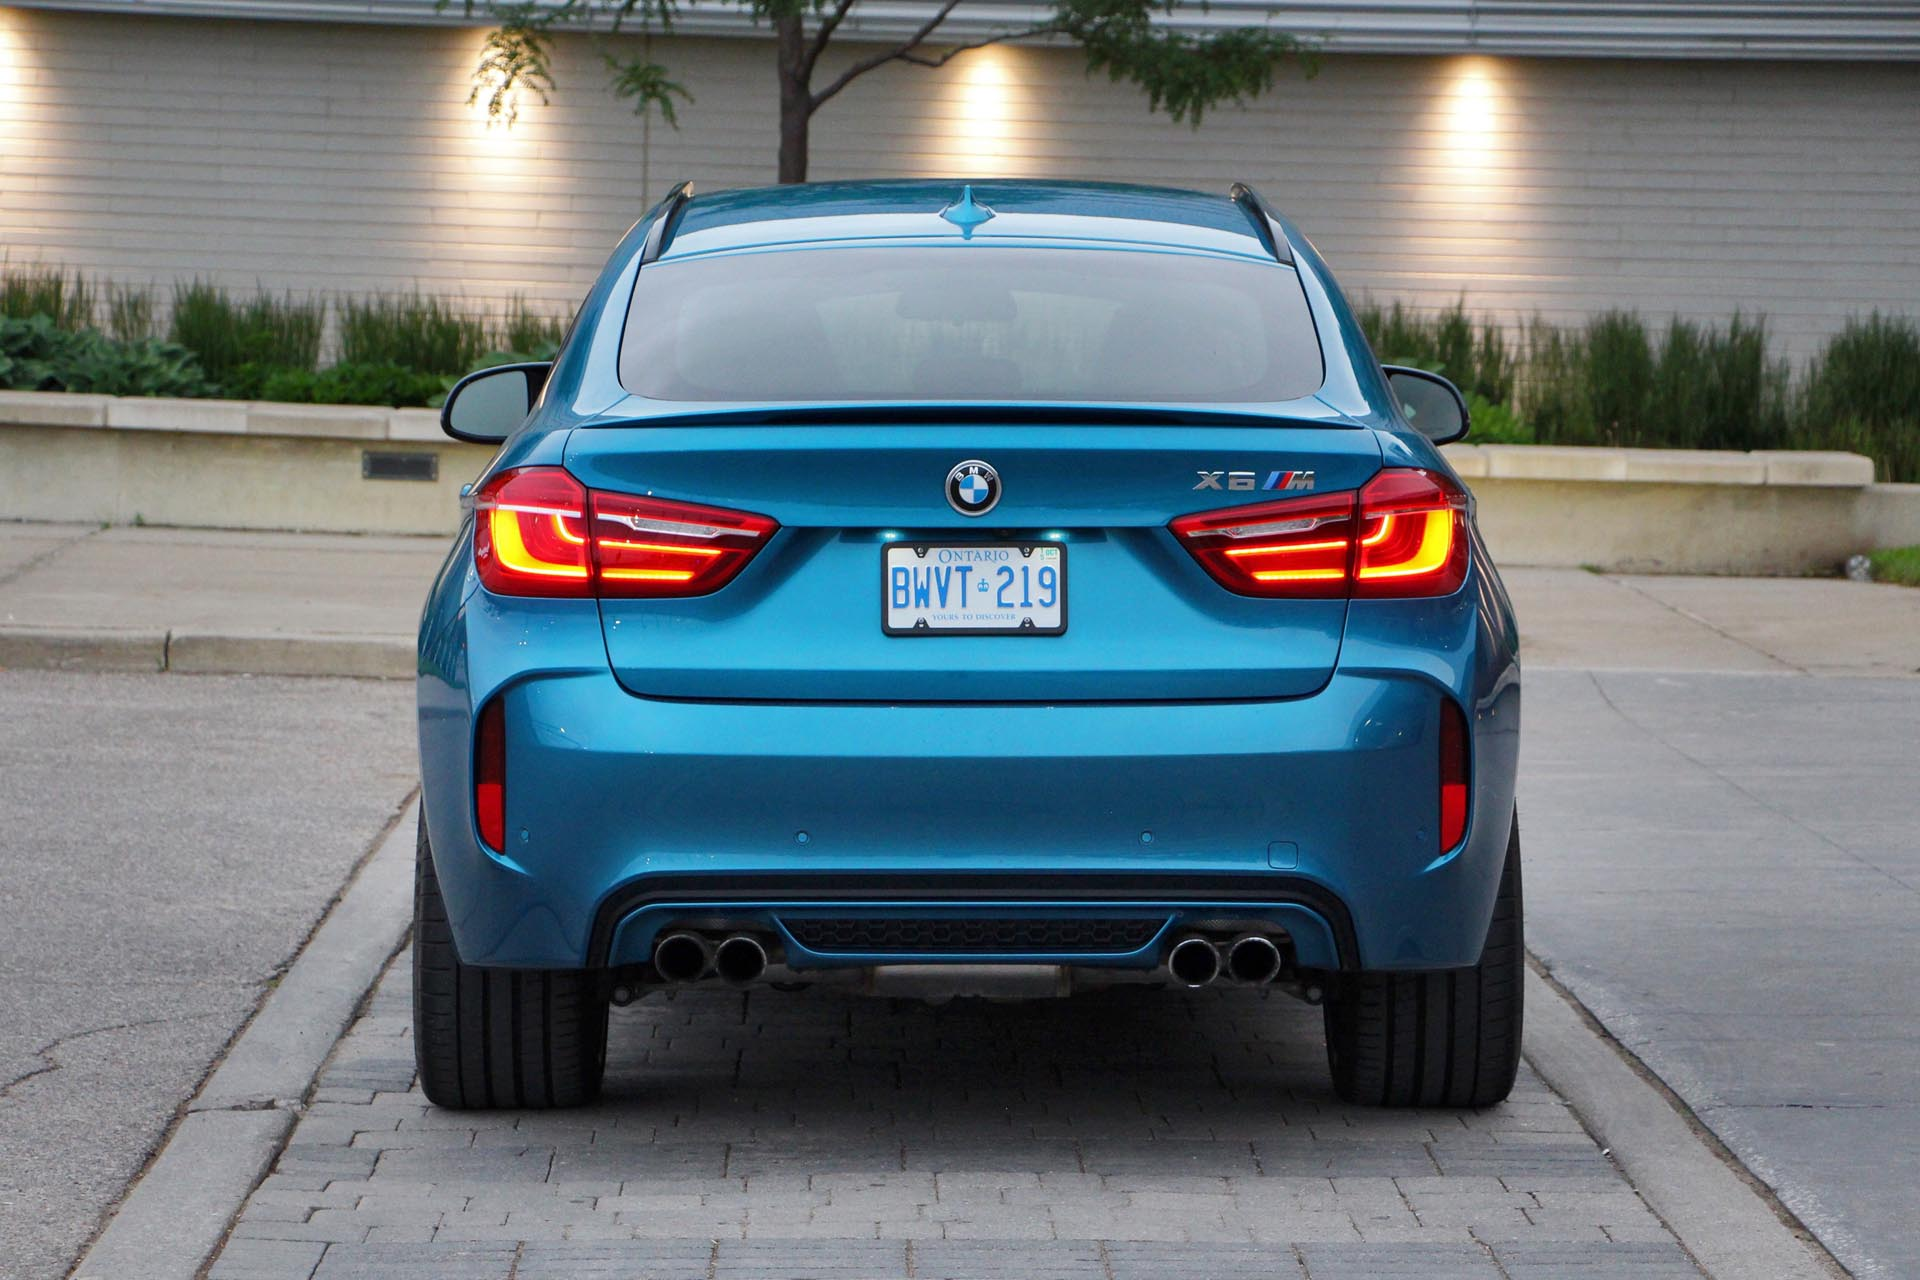 2018 Bmw X6m 2017 2018 Best Cars Reviews